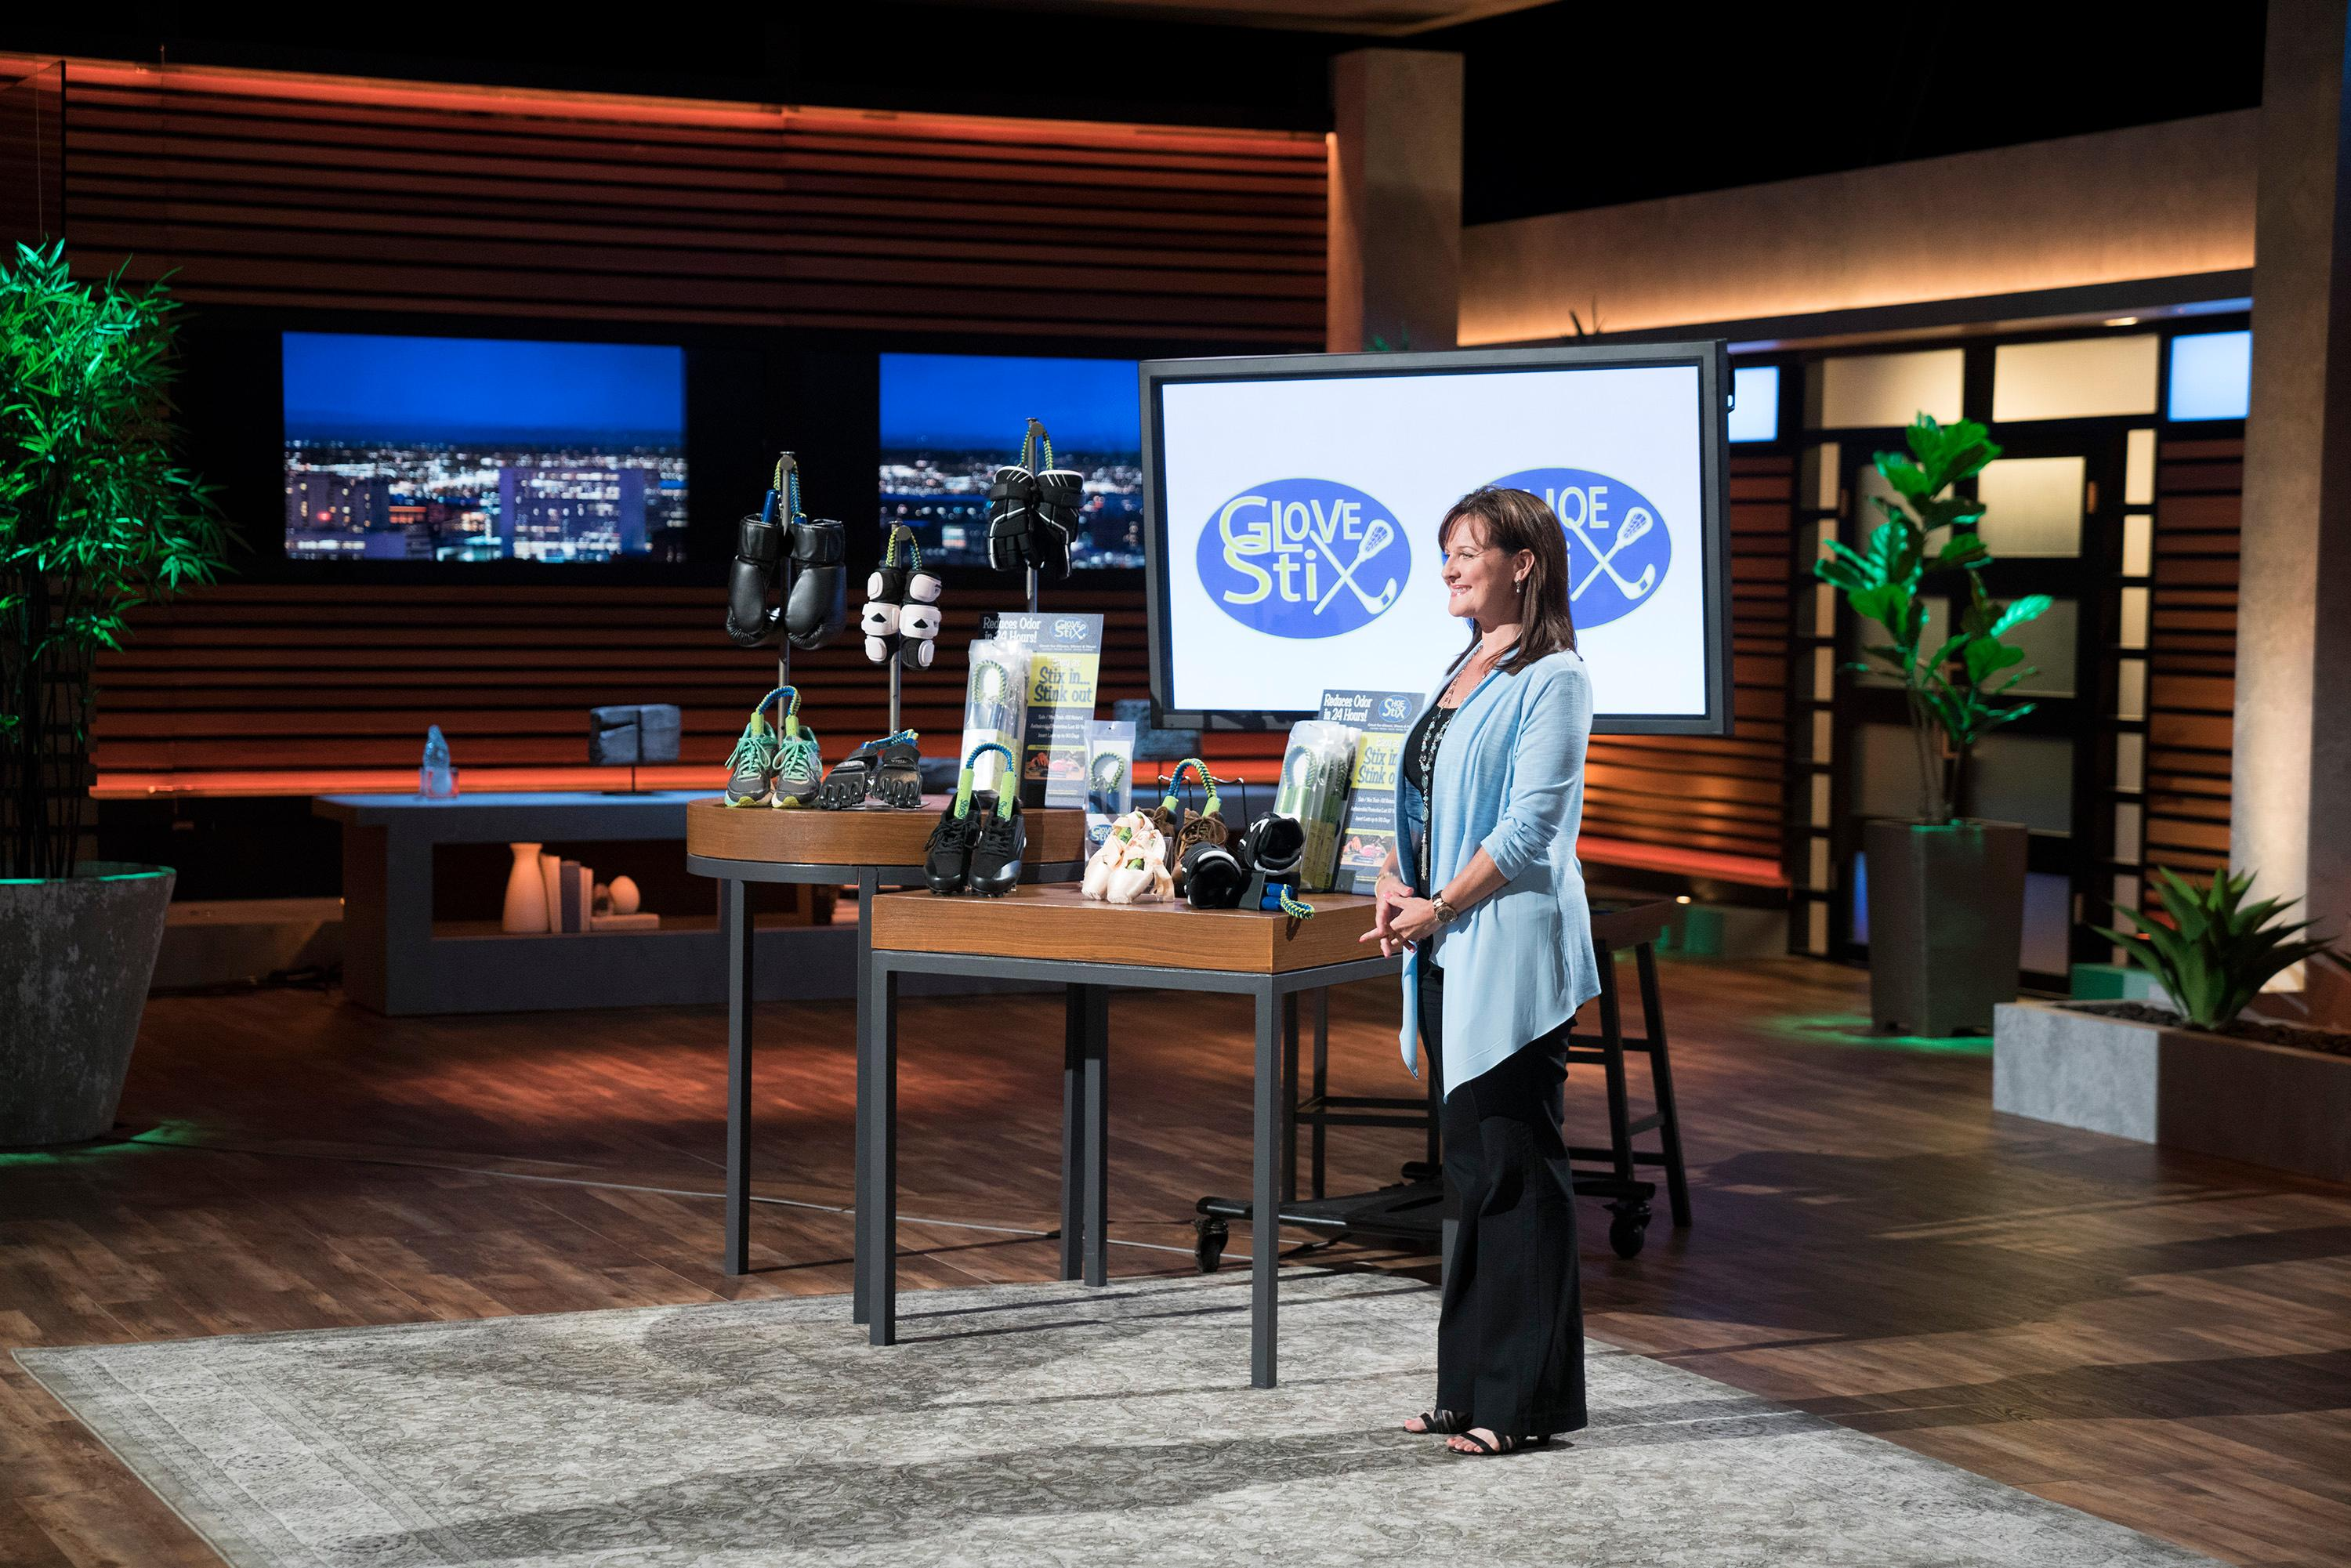 The turning point for her business came when she won NBC's &quot;Next Big Thing&quot; competition on &quot;The Today Show&quot; and was invited to sell the product to a live audience on QVC the very next day. She sold out of her entire inventory, and available back orders, in 7.5 minutes. (Image: ABC/Michael Desmond)<p></p>